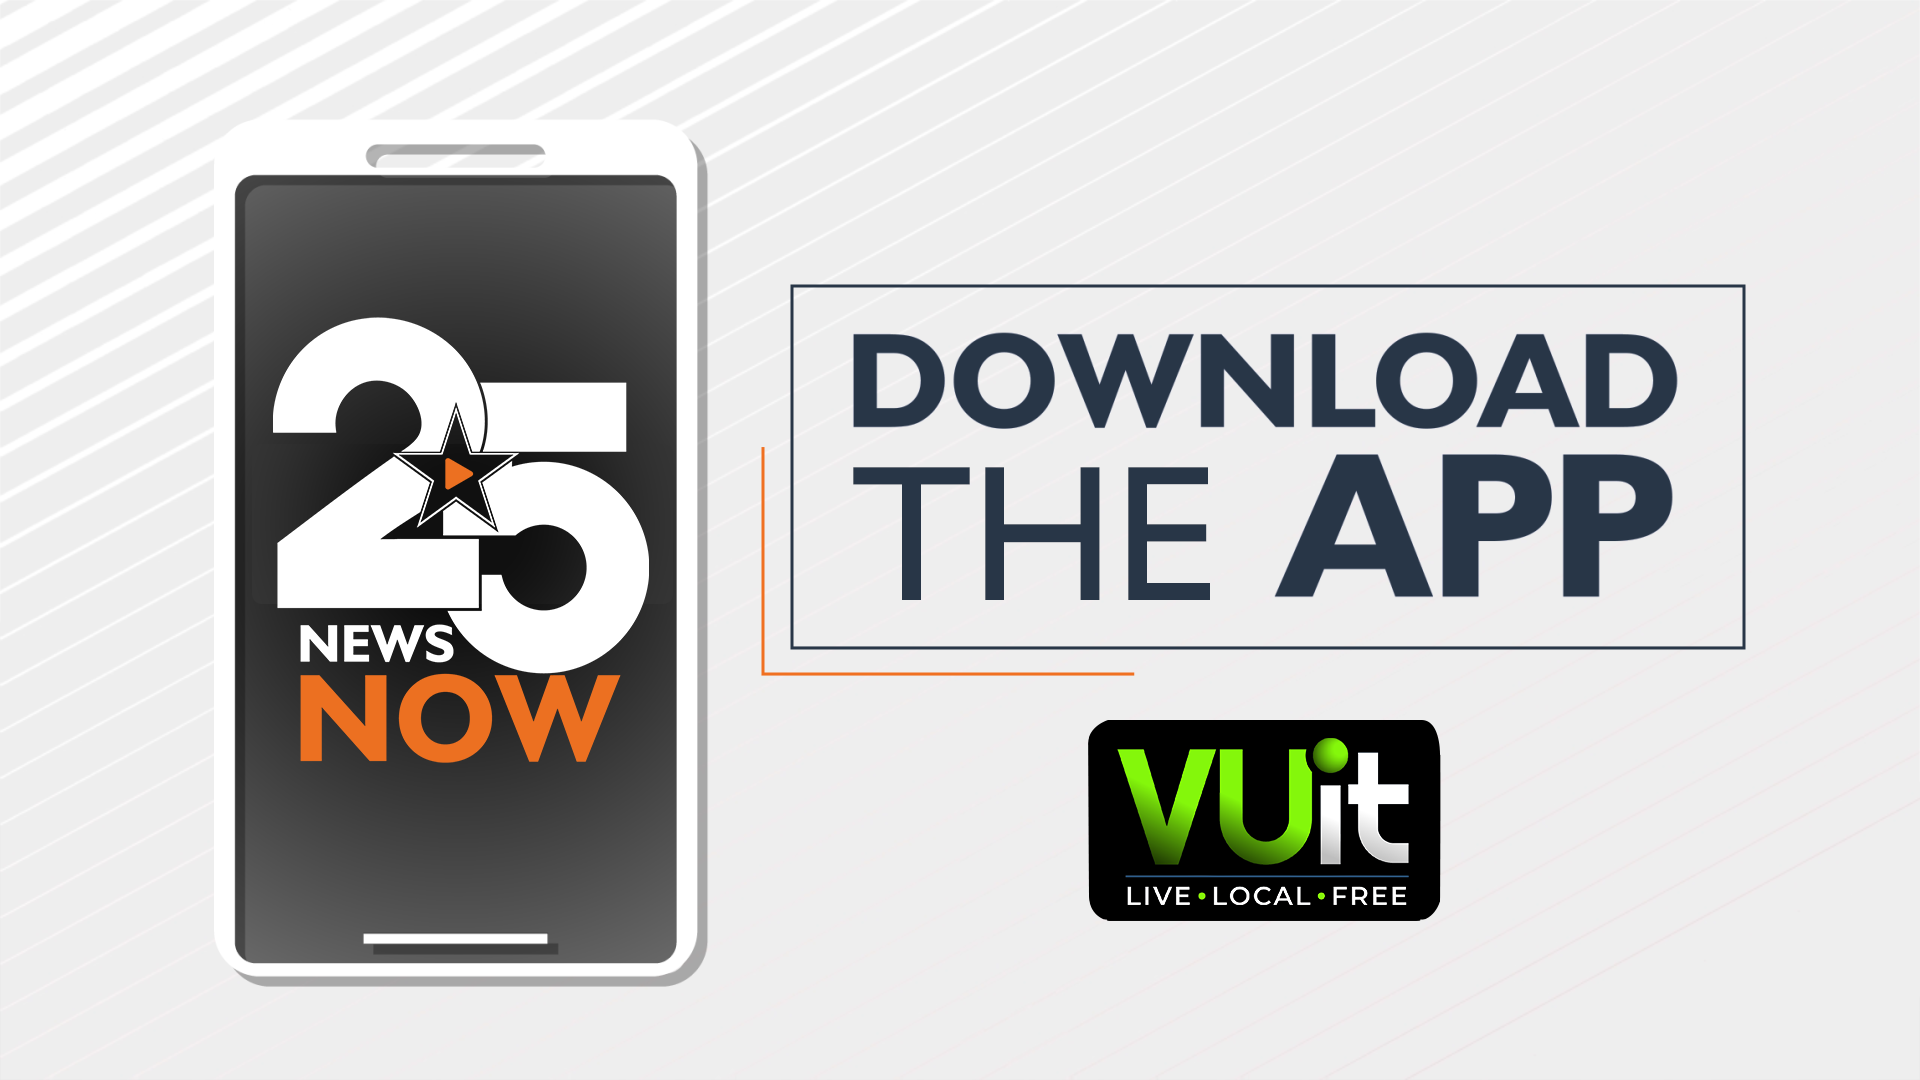 Download Vuitw25now